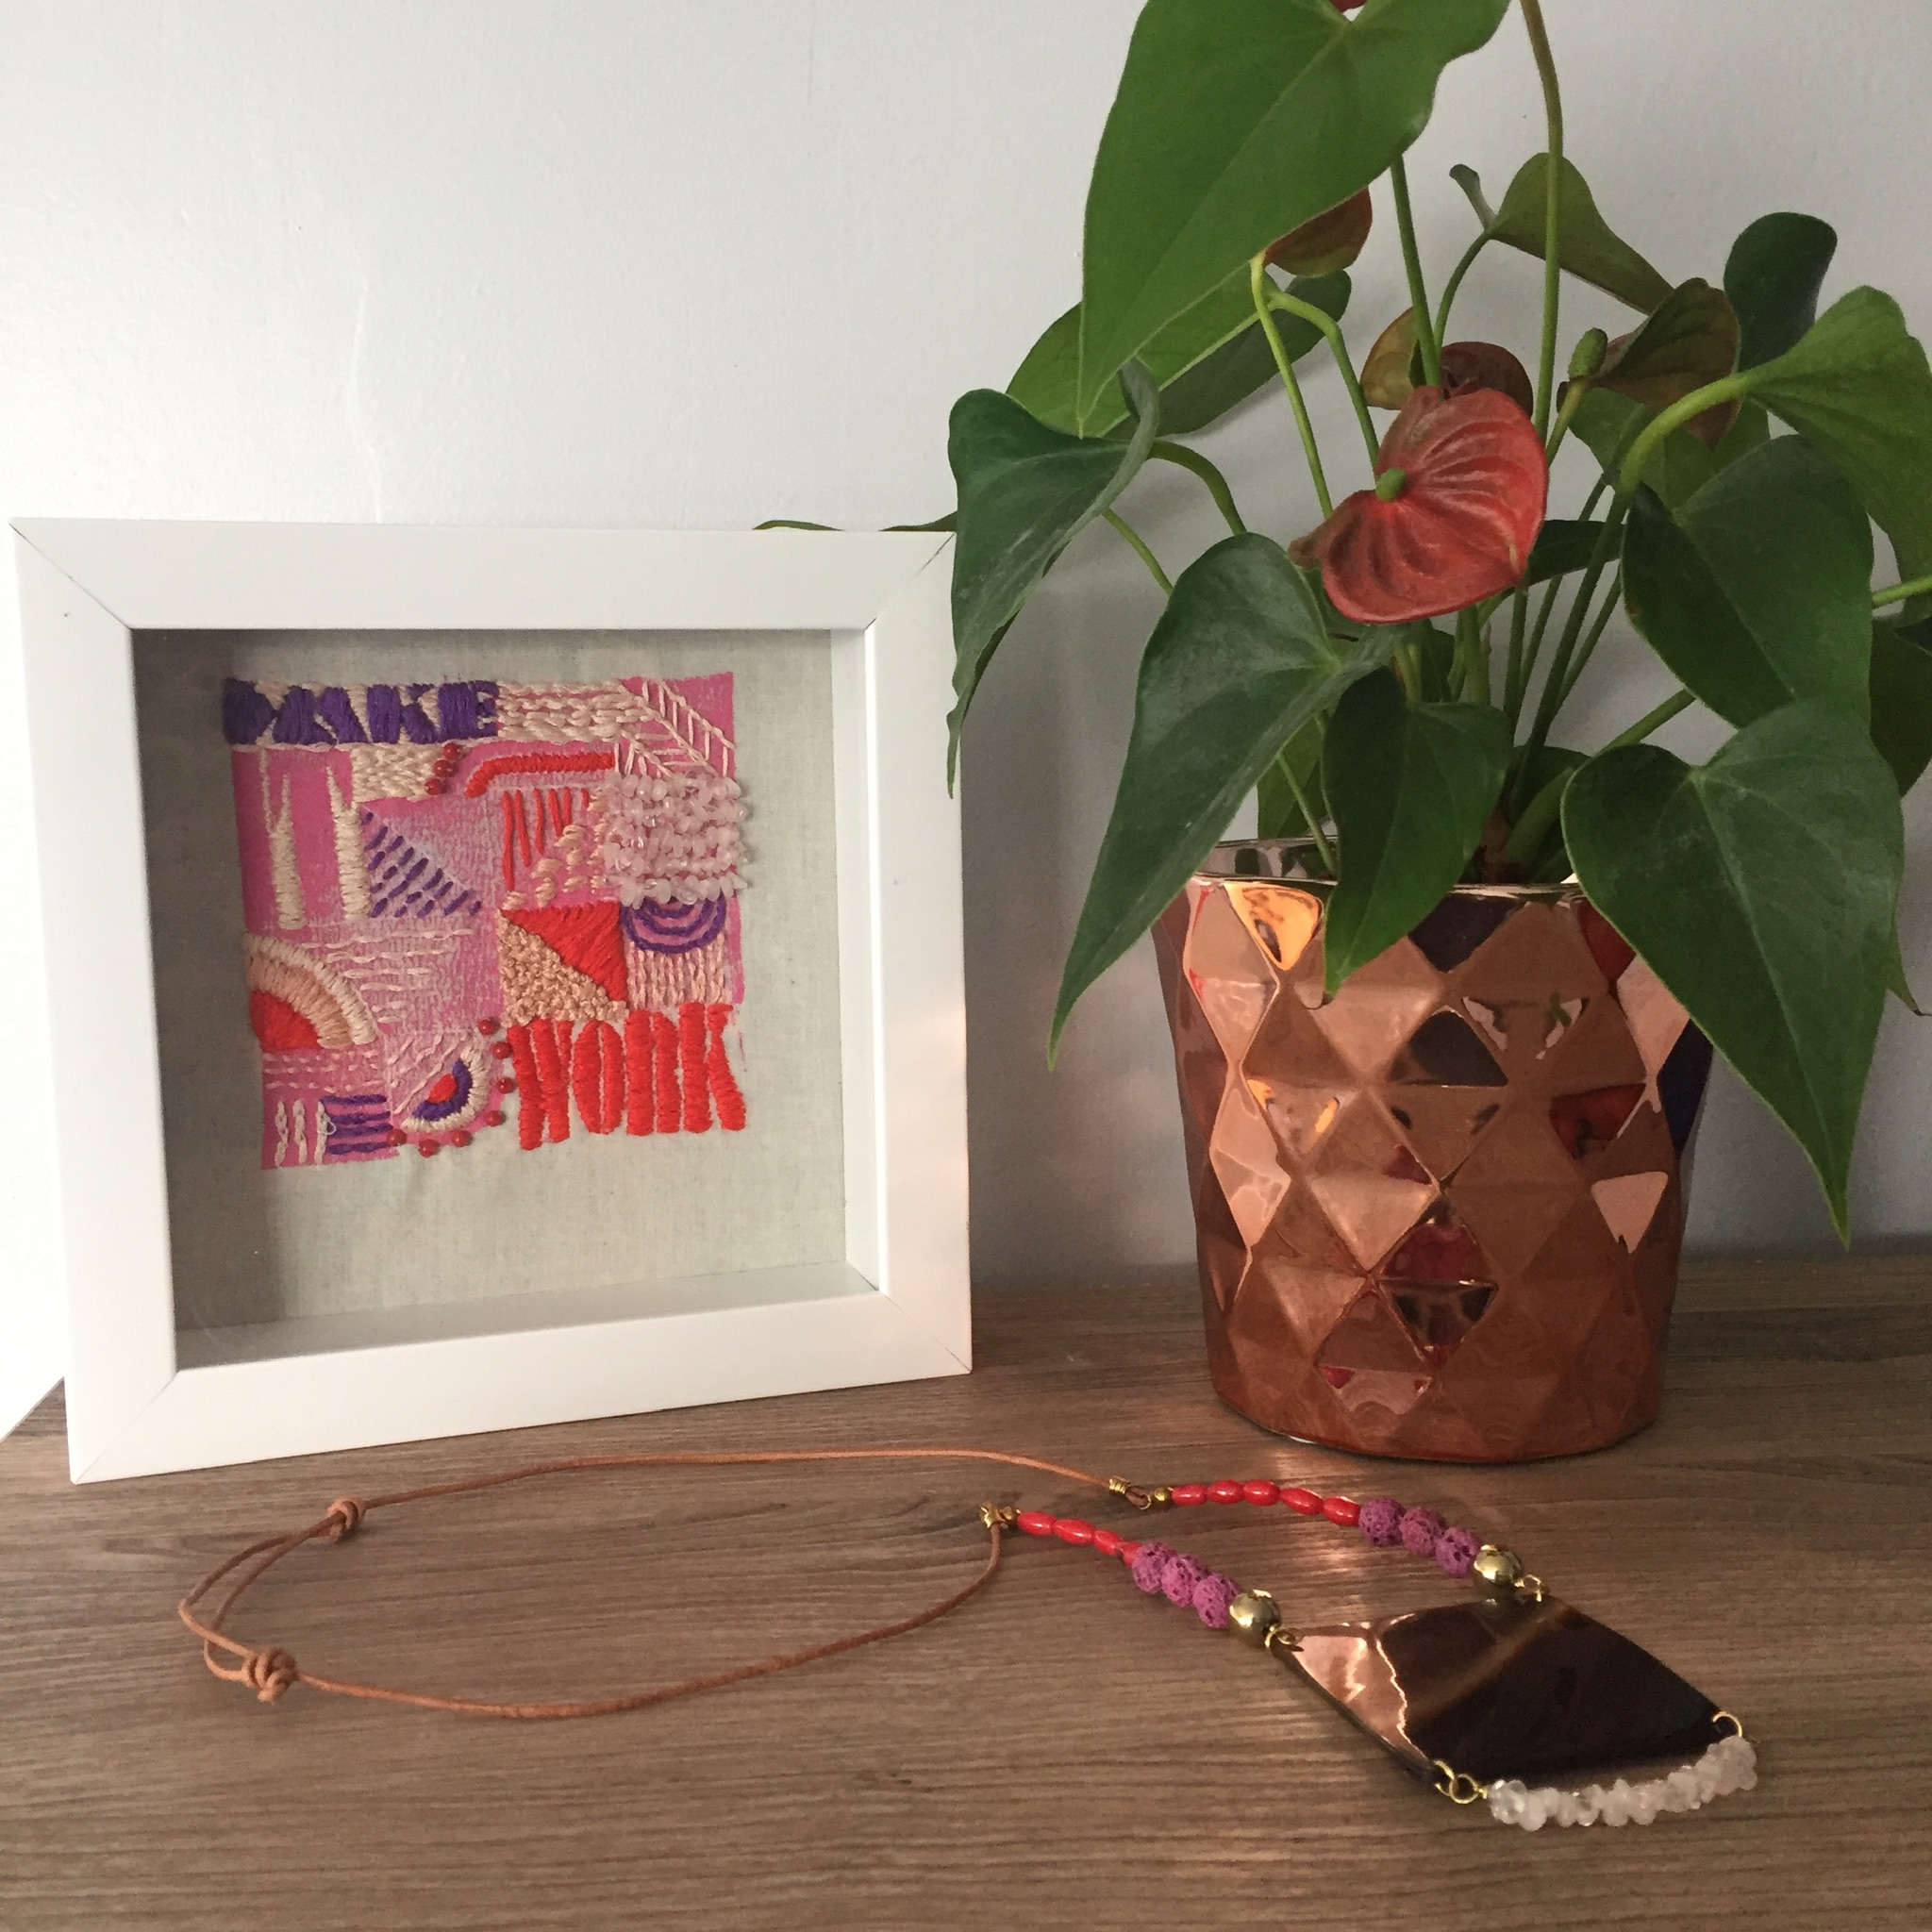 """Make It Work"" embroidered block print on cotton with rose quartz and red coral. Taken in my home next to my plant and one of my necklaces .JPG"